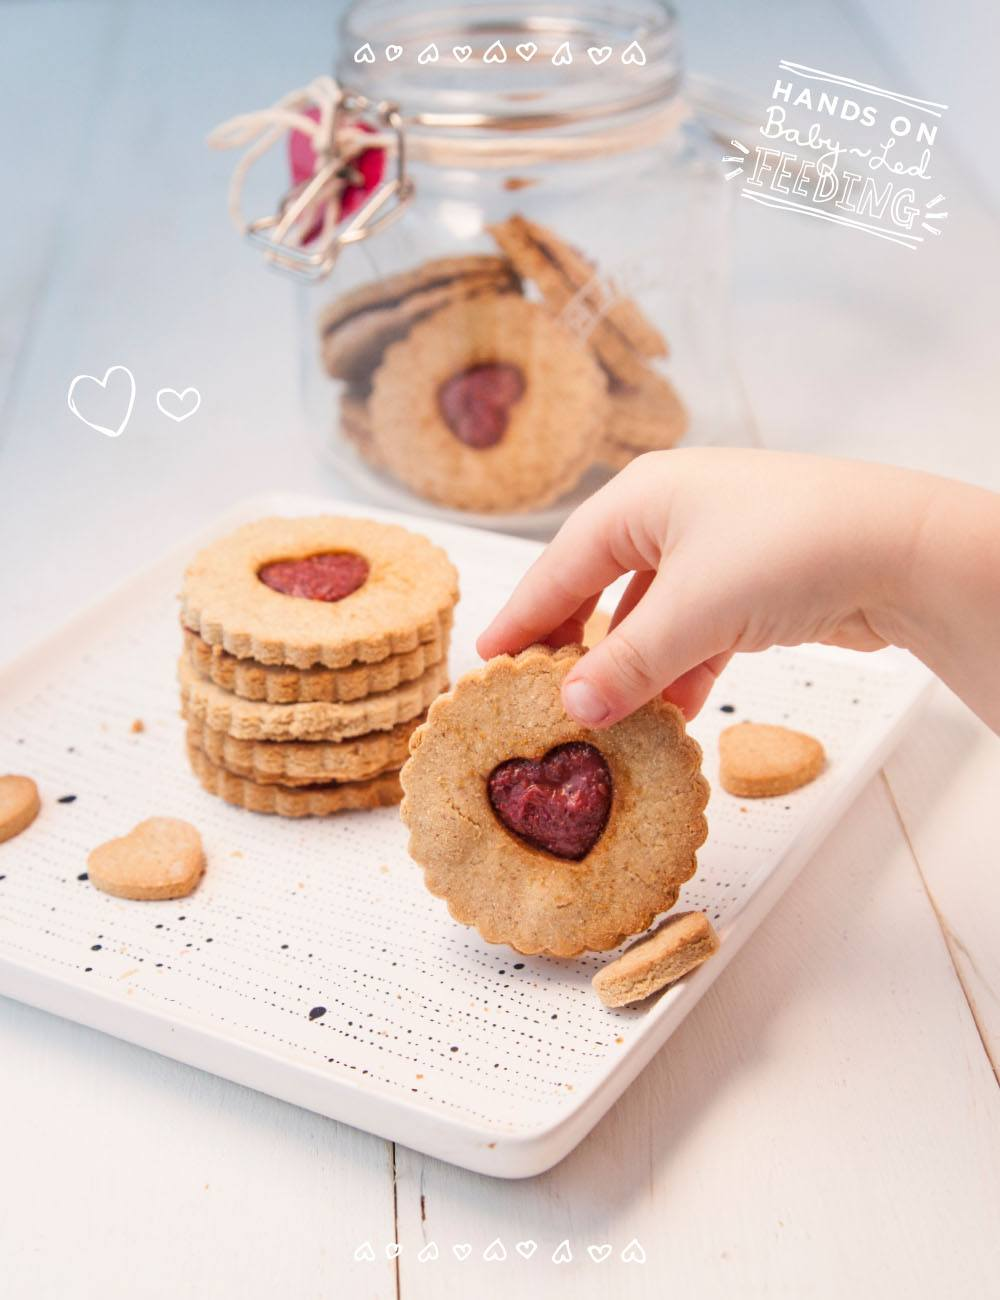 These hearty jam cookie are made with wholesome buckwheat and coconut flours. They are refined sugar free- sweetened only with with maple syrup and fresh raspberries. Add a few tablespoons of chia seeds for added protein, omega 3s , and antioxidants. #valentinesday #valentines #cookies #raspberries #babyledweaning @https://www.pinterest.com/babyledfeeding